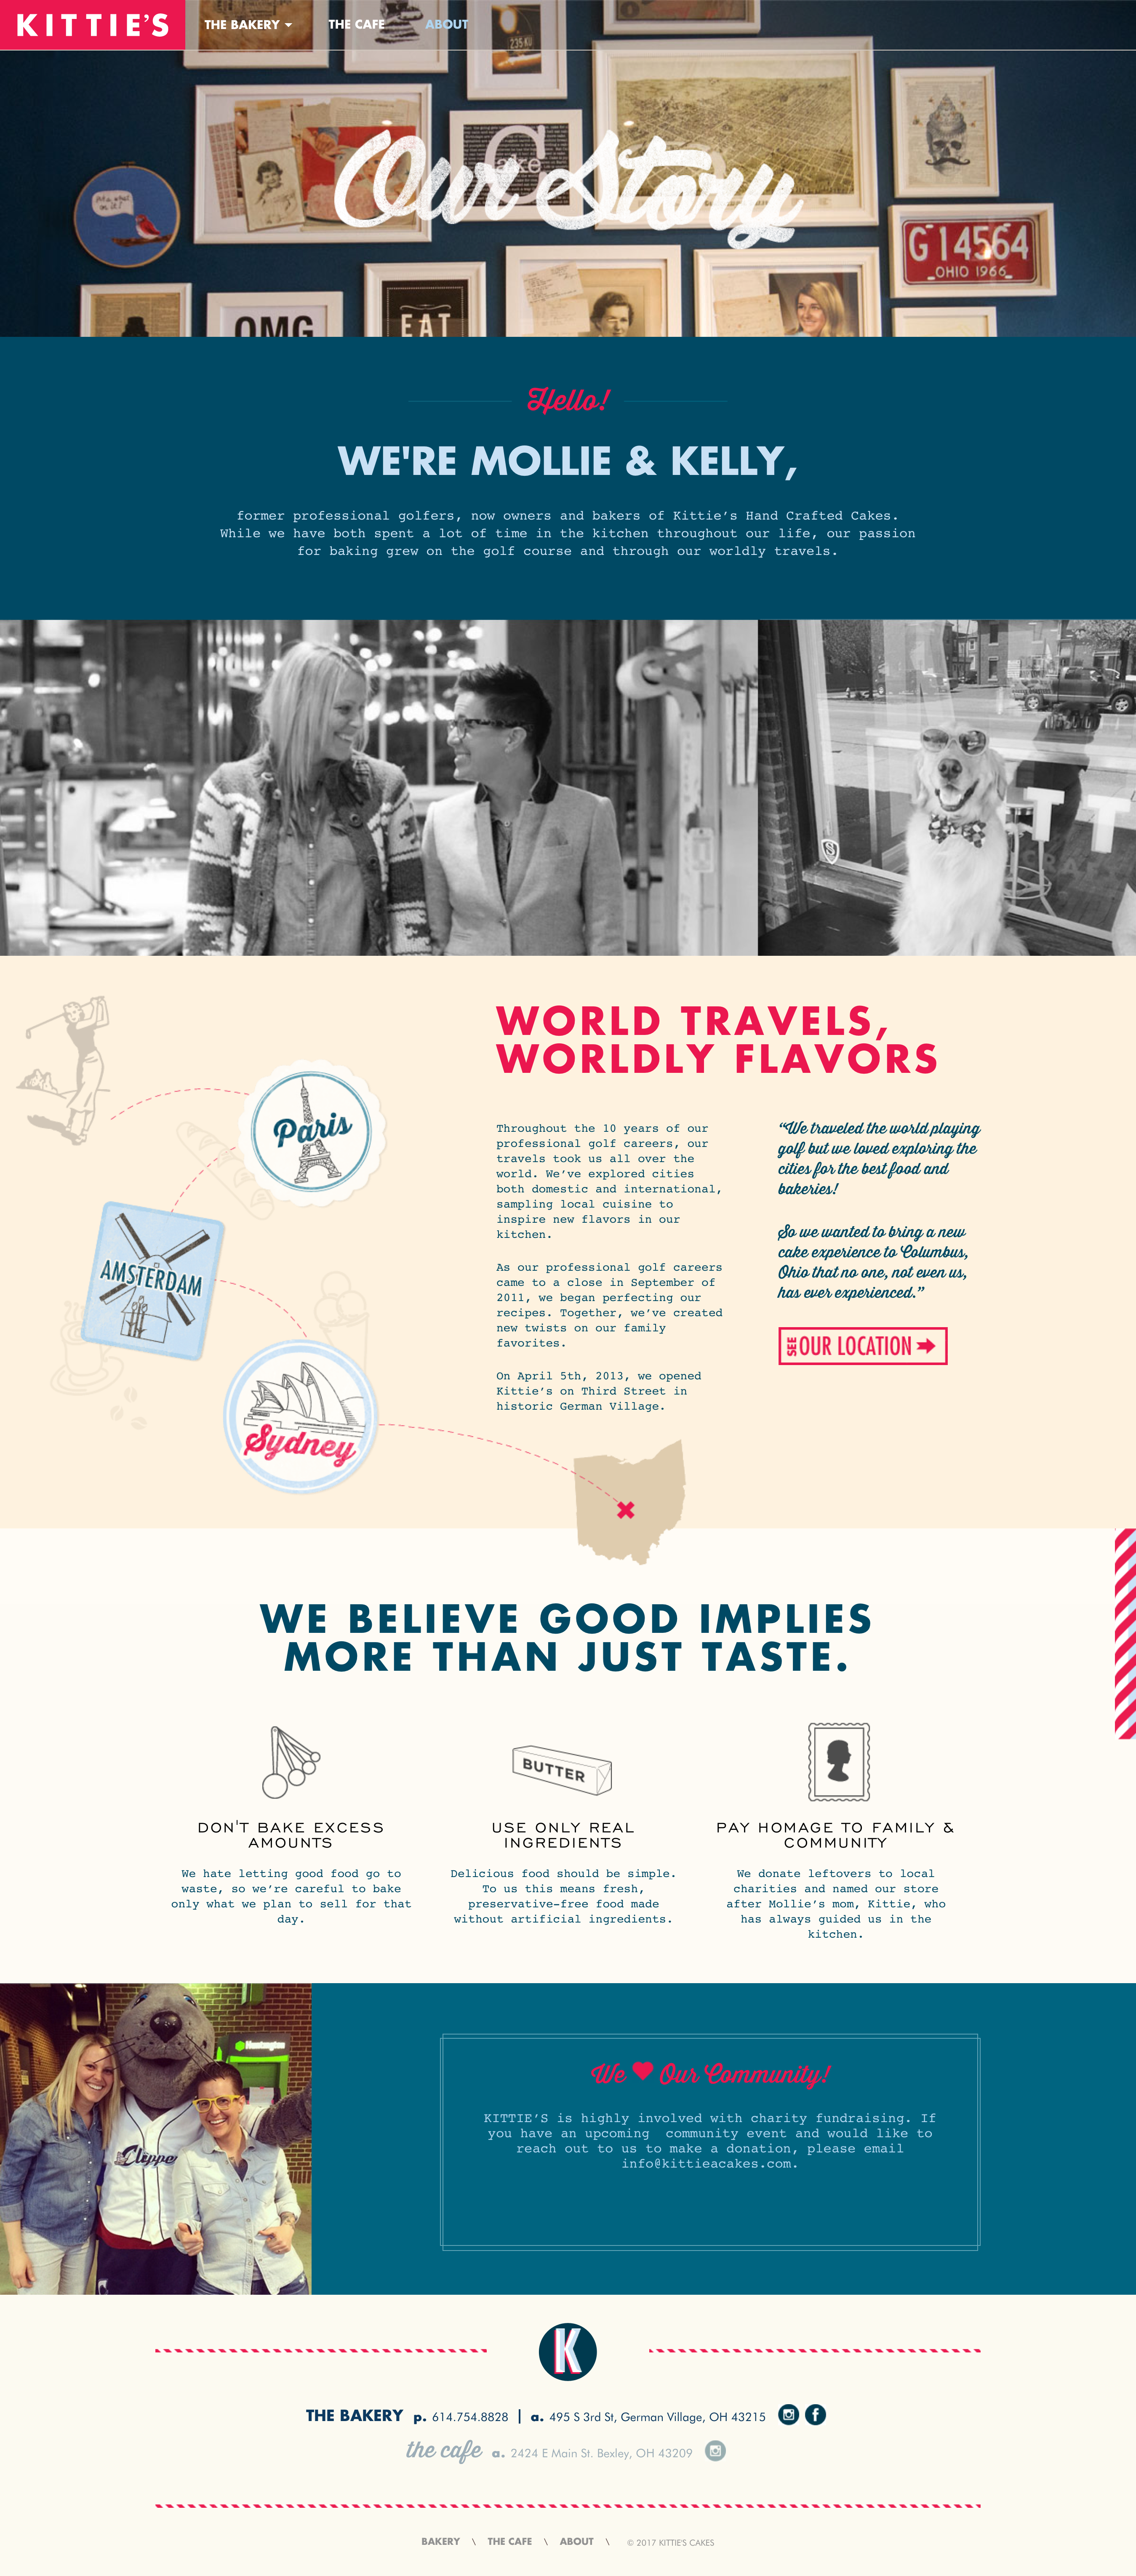 Awesome Example Of Well Thought Out Web Design Combining A Vintage Feel With Clean Modern Layouts About Us Page Beautiful Website Design Web Layout Design